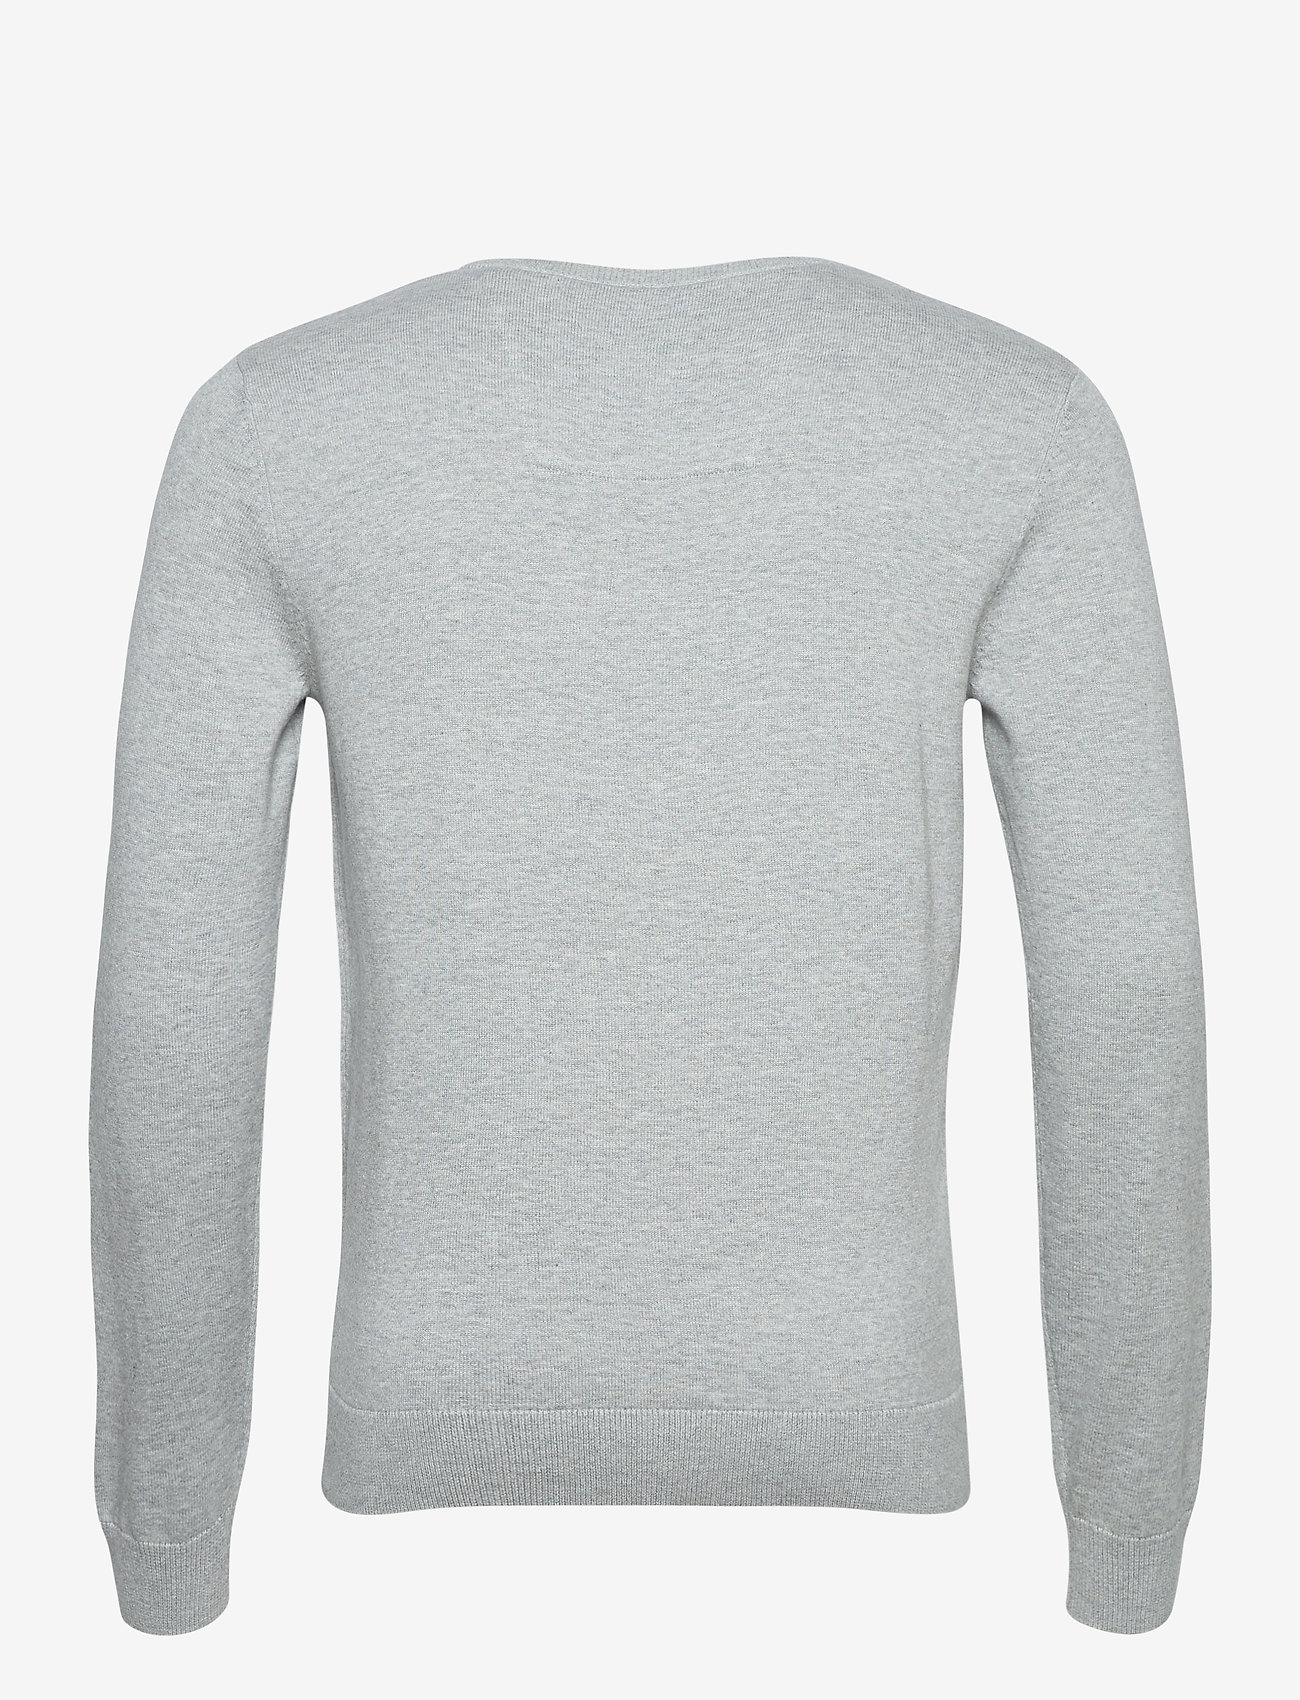 Tom Tailor basic crew n - Strikkevarer LIGHT SOFT GREY MELANGE - Menn Klær